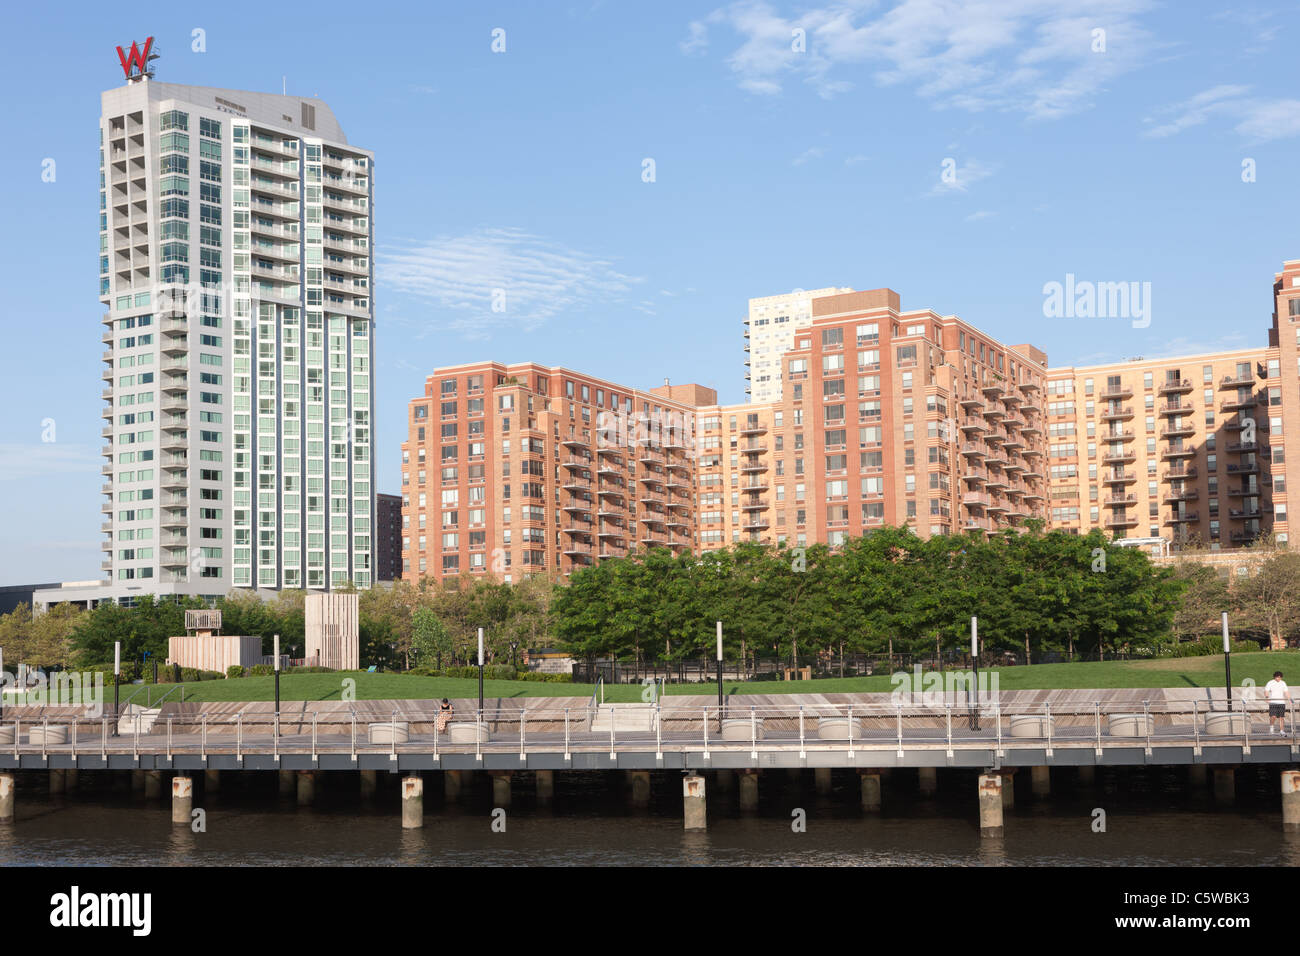 Waterfront redevelopment including the W Hotels W Hoboken and 333 River Street in Hoboken, New Jersey. - Stock Image